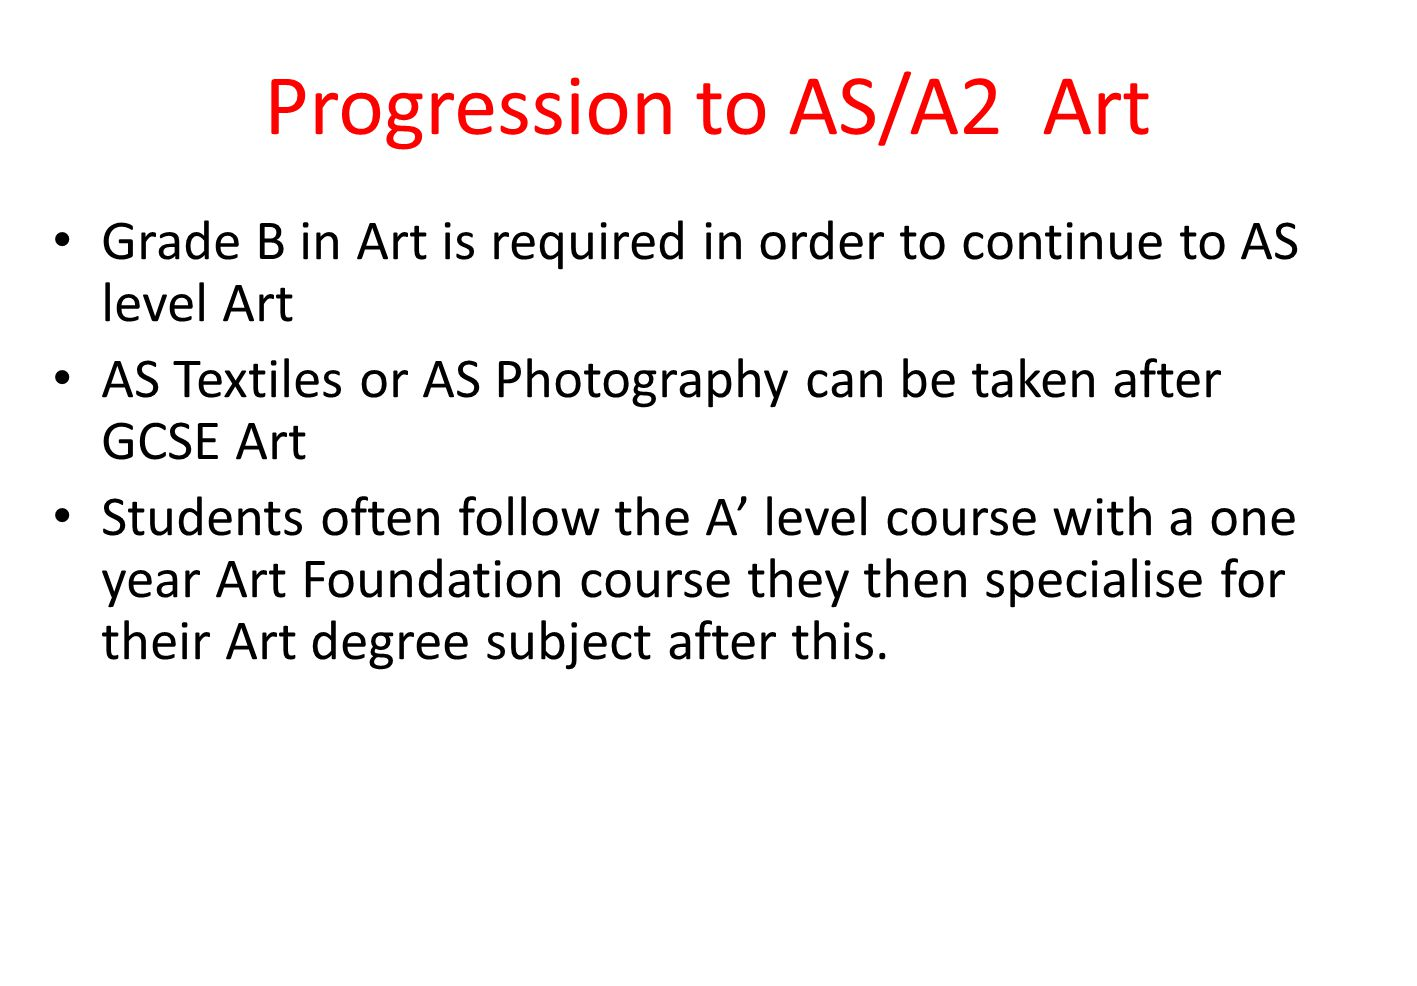 Progression to AS/A2 Art Grade B in Art is required in order to continue to AS level Art AS Textiles or AS Photography can be taken after GCSE Art Students often follow the A' level course with a one year Art Foundation course they then specialise for their Art degree subject after this.